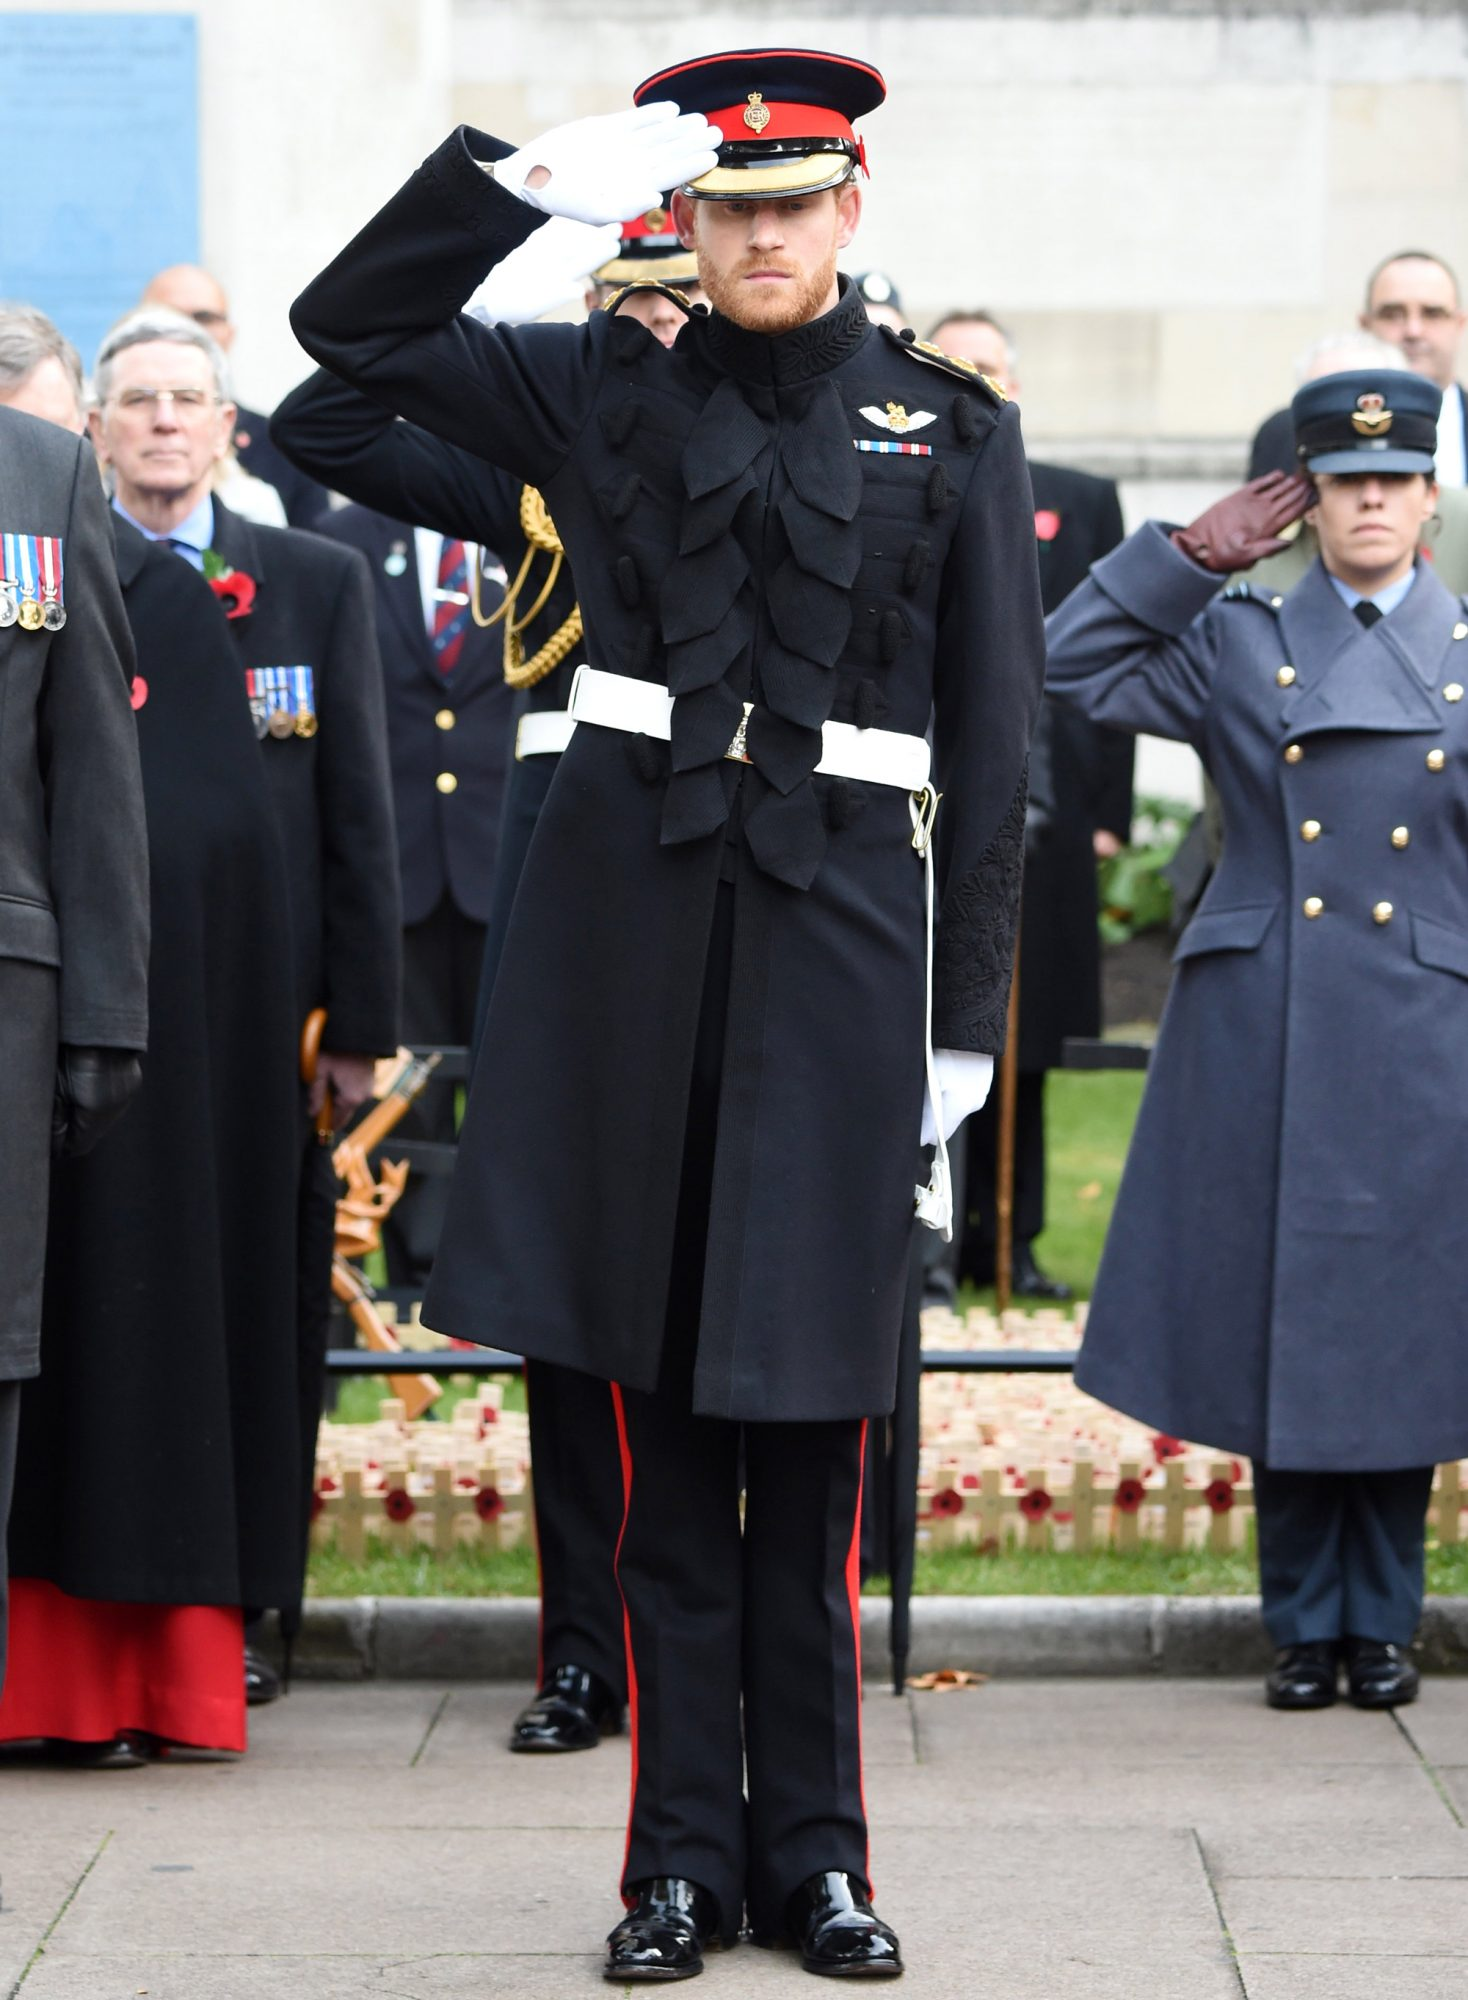 Prince Harry Returns to His Military Uniform to Honor Fallen Soldiers in a Solemn Ceremony